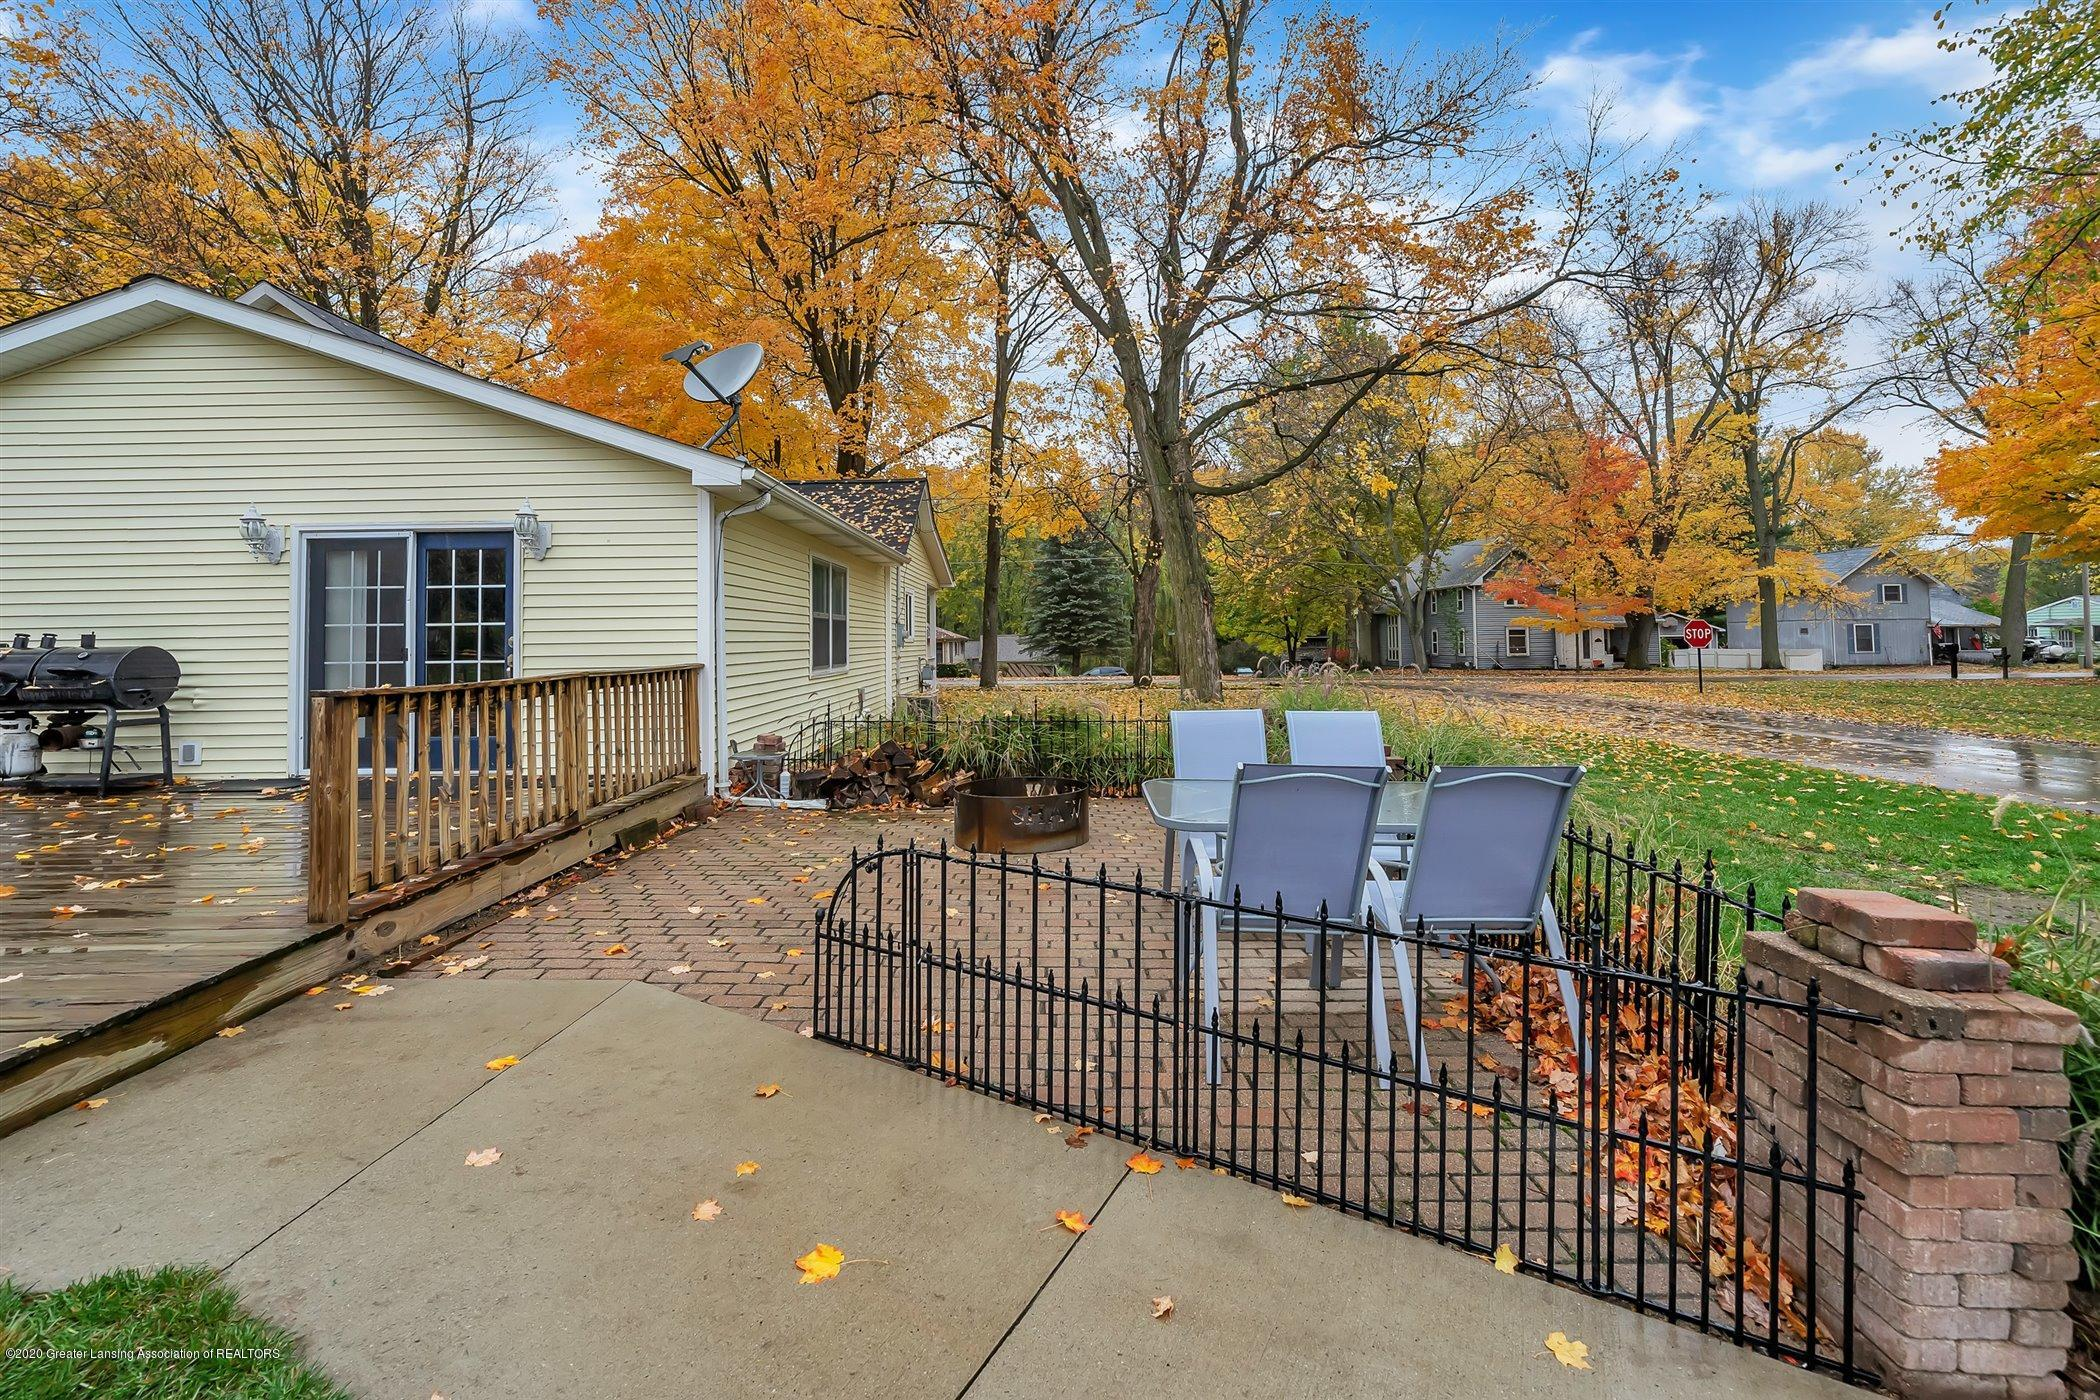 328 E 2nd St - (32) EXTERIOR Rear Deck and Patio - 33